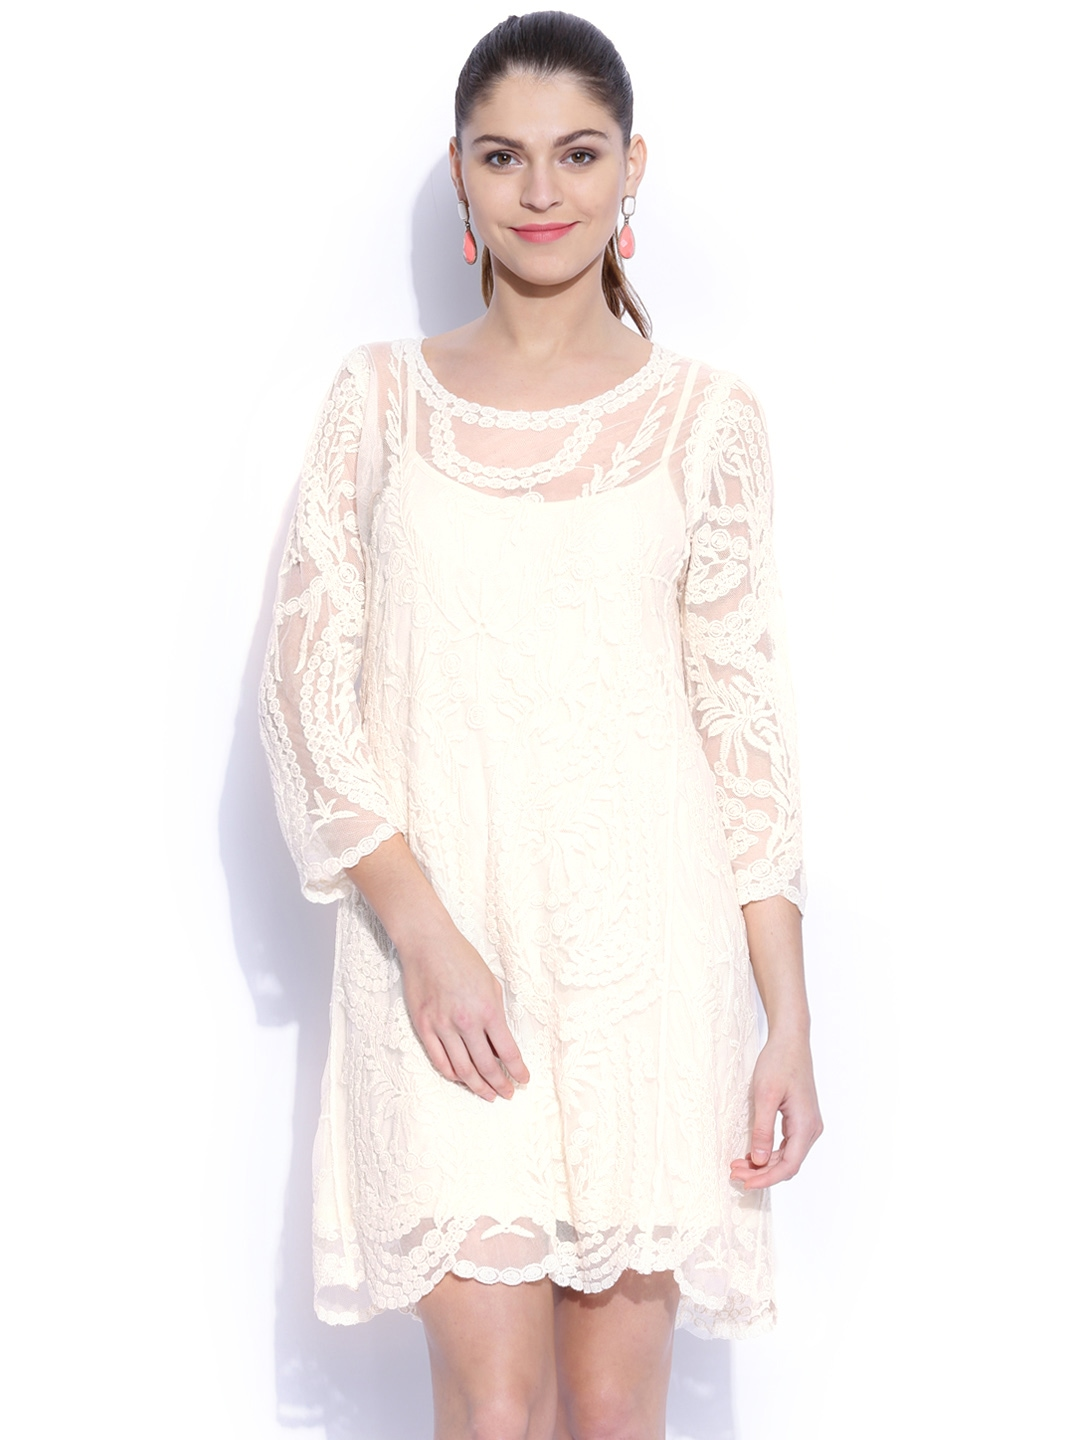 http://assets.myntassets.com/h_1440,q_95,w_1080/v1/image/style/properties/690336/MANGO-Off-White-Embroidery-Shift-Dress_1_cc9c95a3a542a827130bd20684e0e8d2.jpg